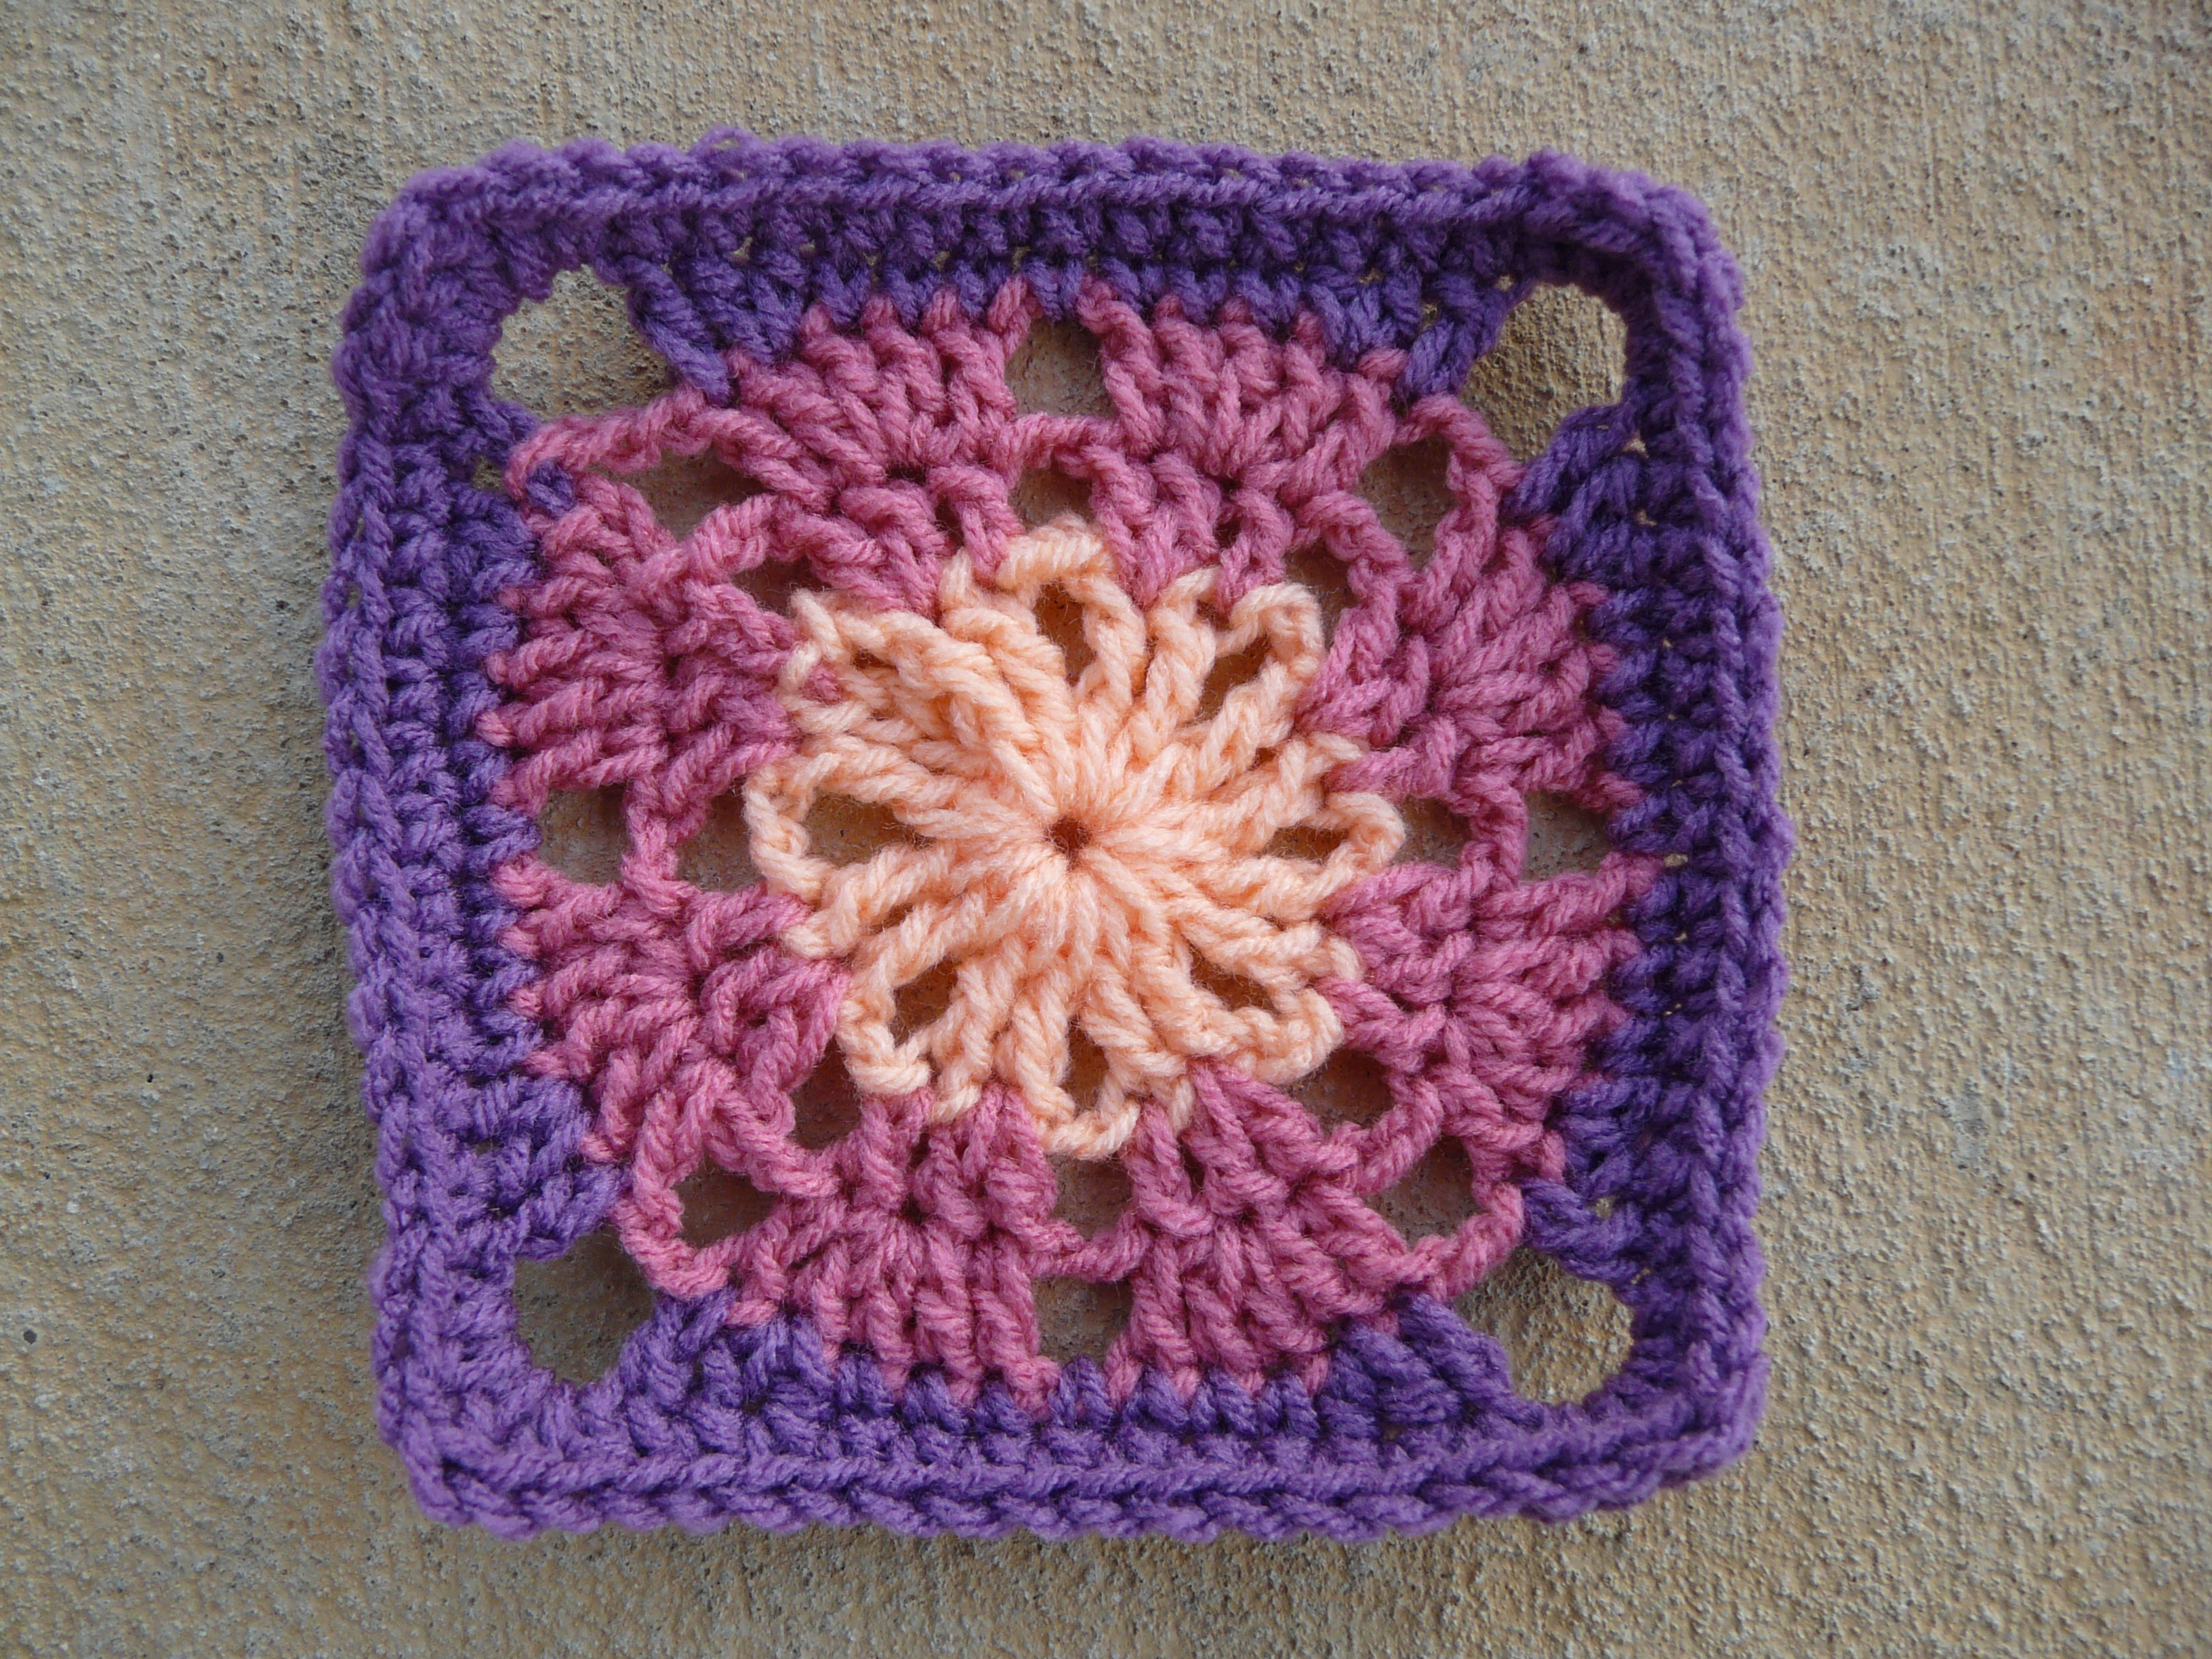 learn more at crochetbug com